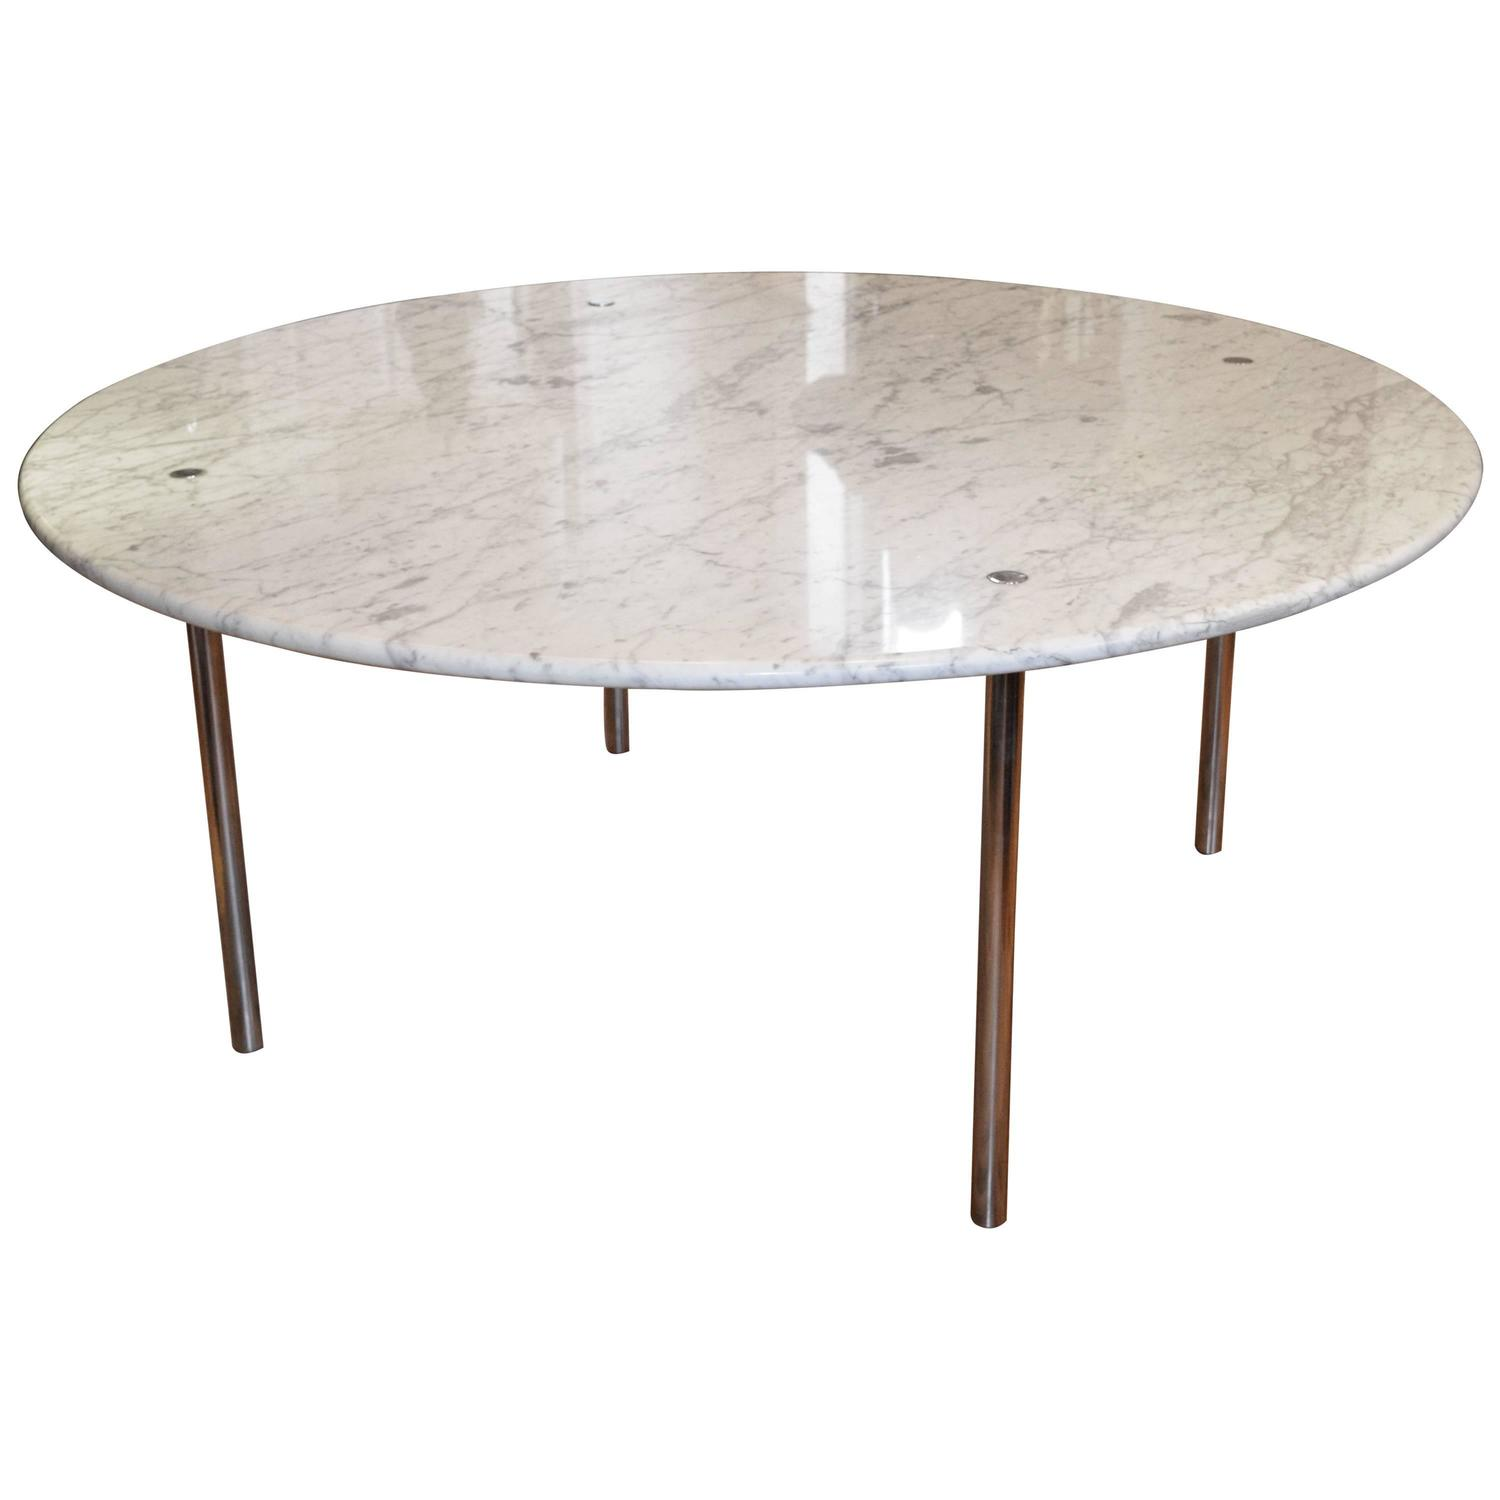 monumental round marble dining table by katavolos littell and kelly for laverne at 1stdibs. Black Bedroom Furniture Sets. Home Design Ideas